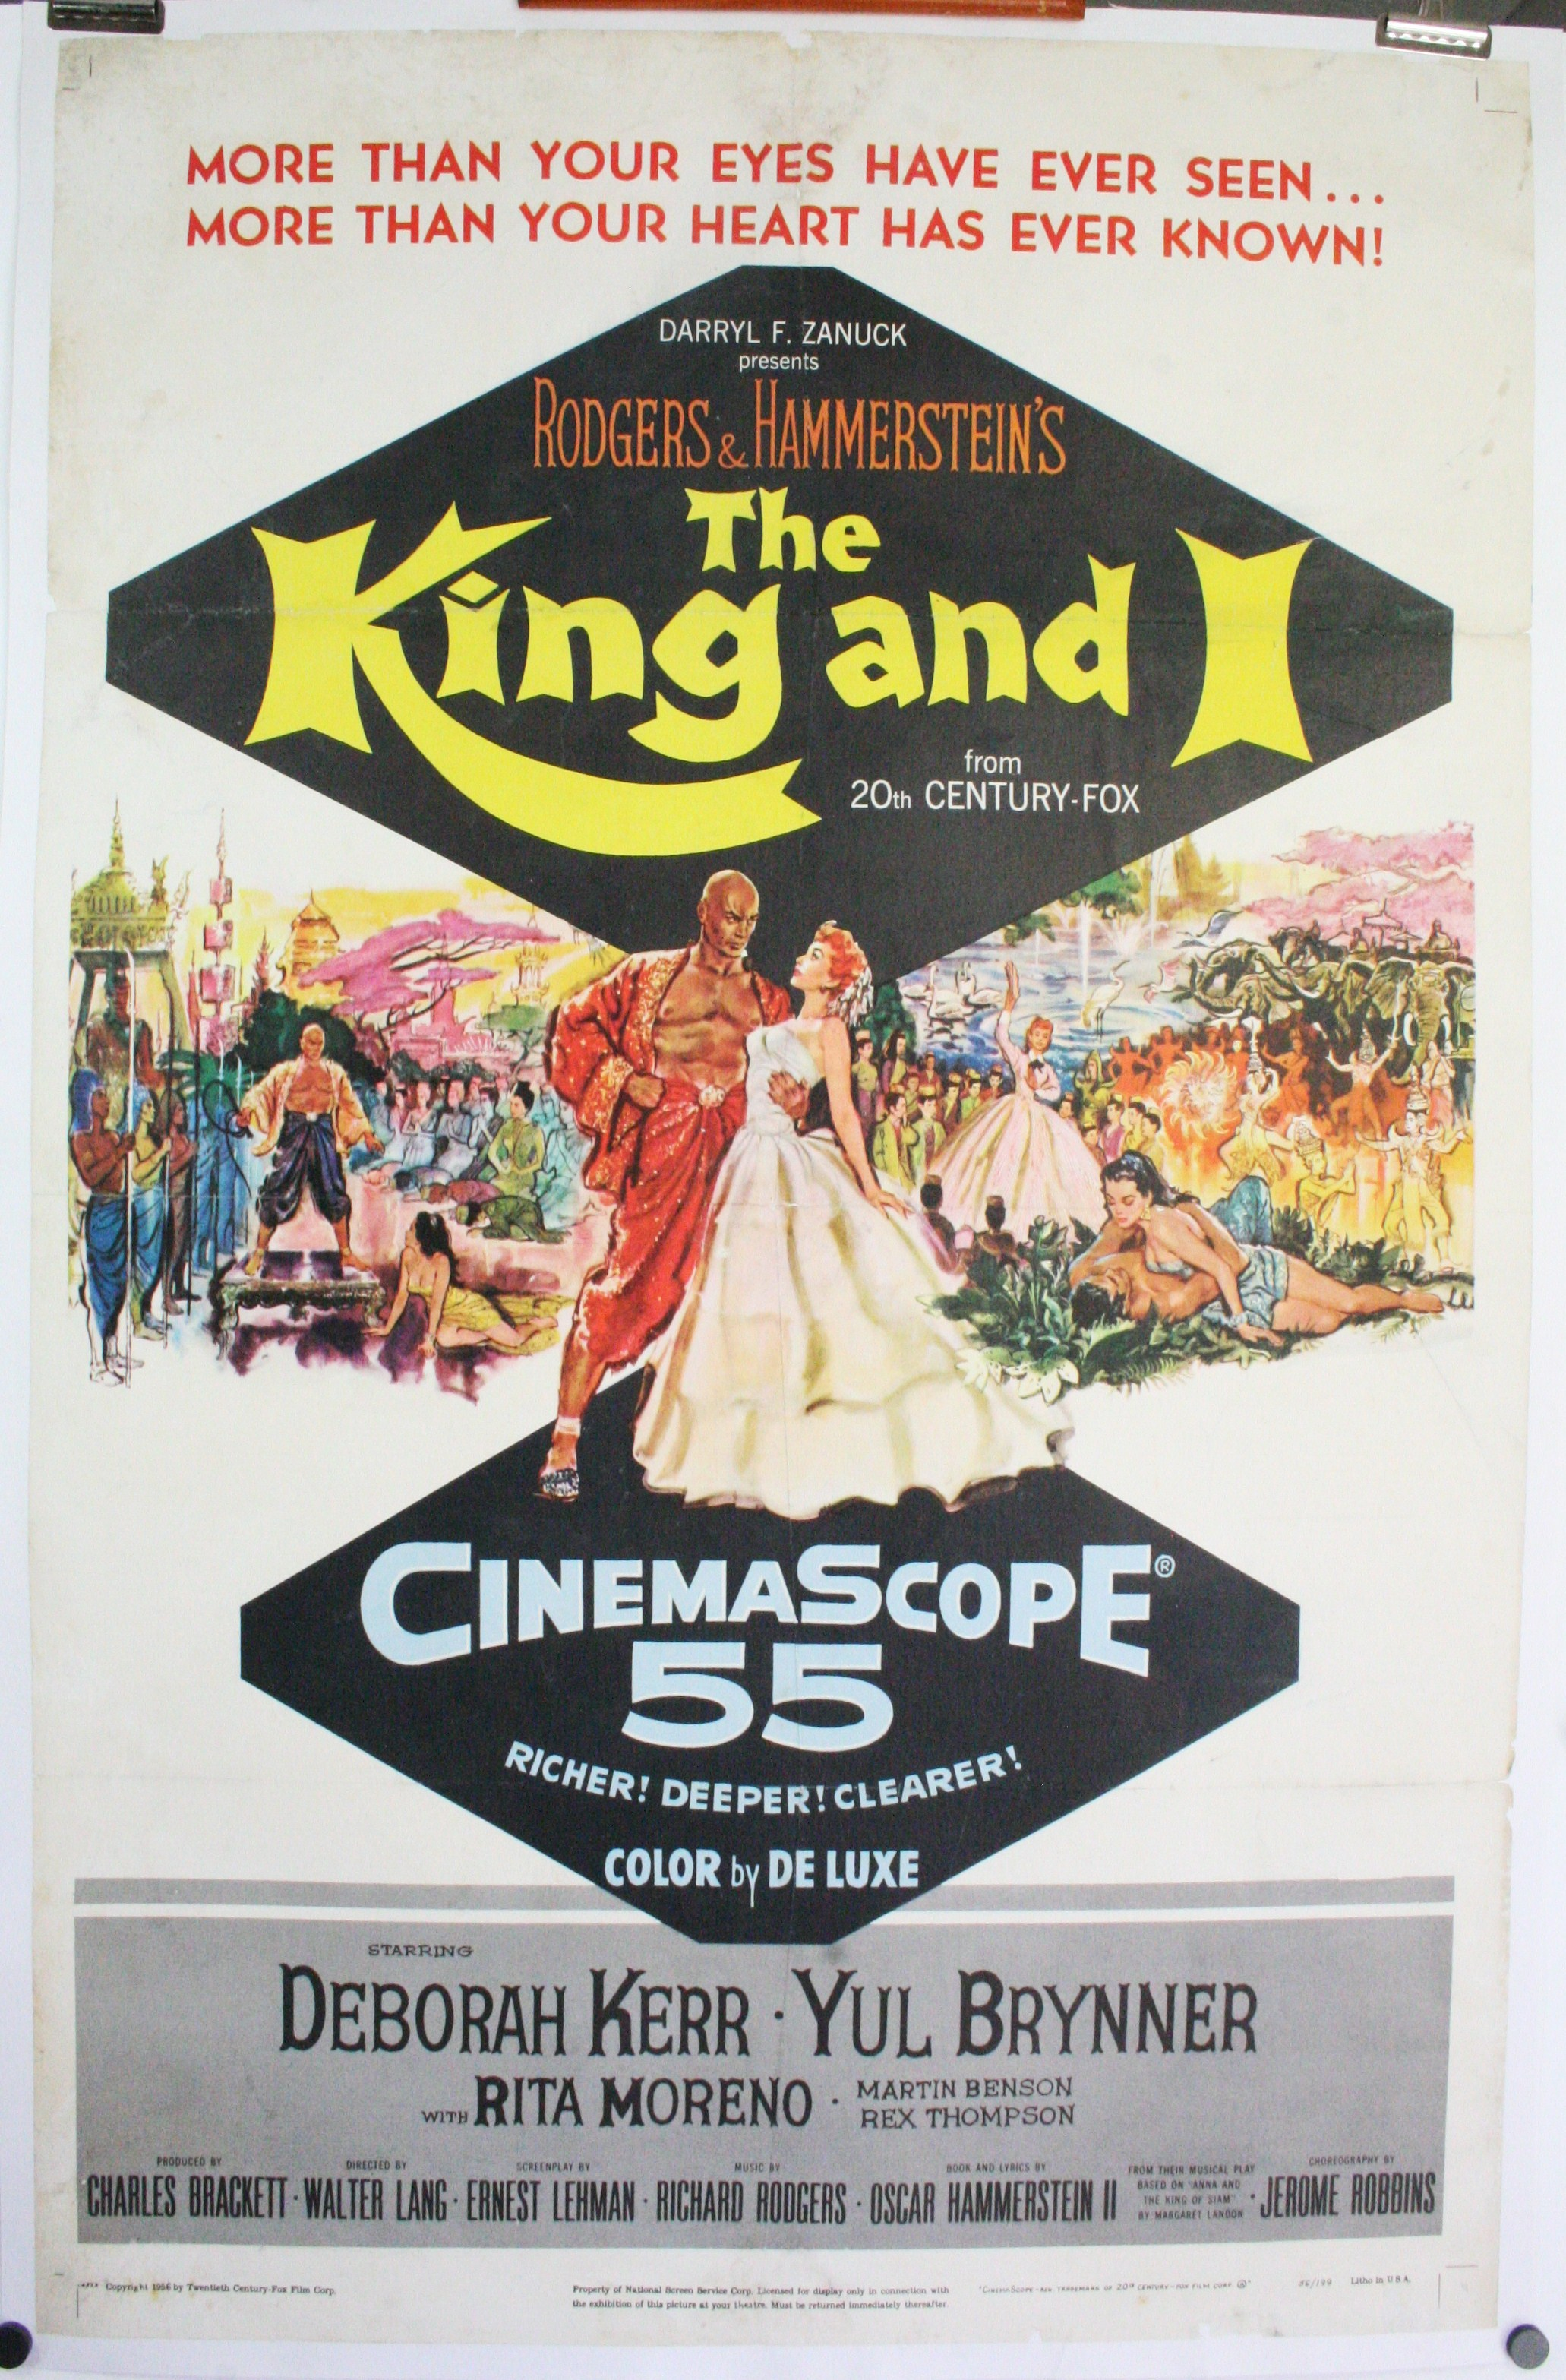 Cinderella 2 Anastasia besides John 20Golden item type topic further King And I An Original Rodgers And Hammerstein Musical Poster additionally Artists further 8592111. on oscar hammerstein iii